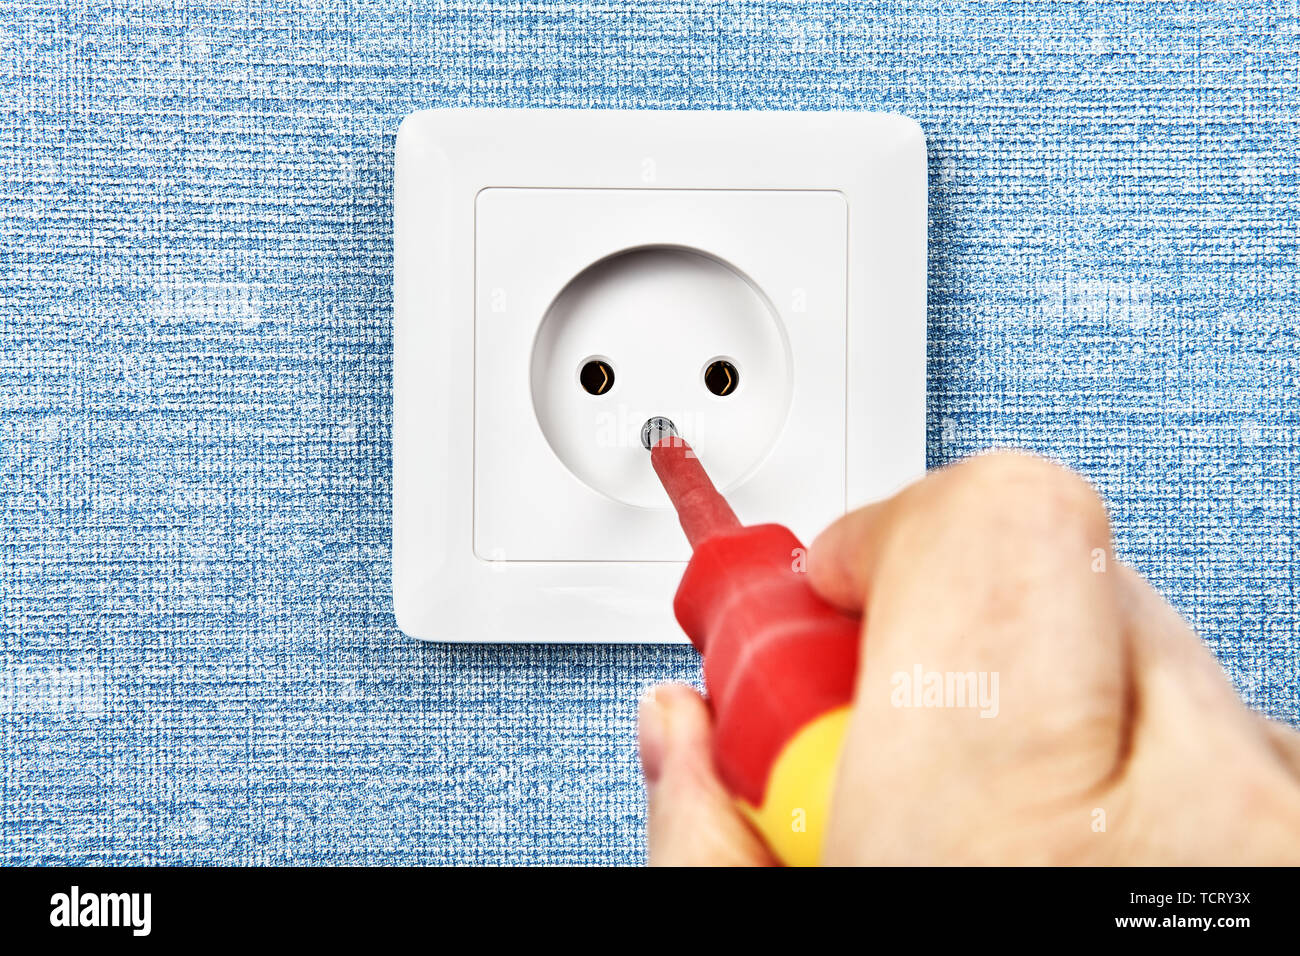 Power Point Installation Repairman Is Installing European Standard Electrical Outlet Type C Into The Home Wiring System Stock Photo Alamy